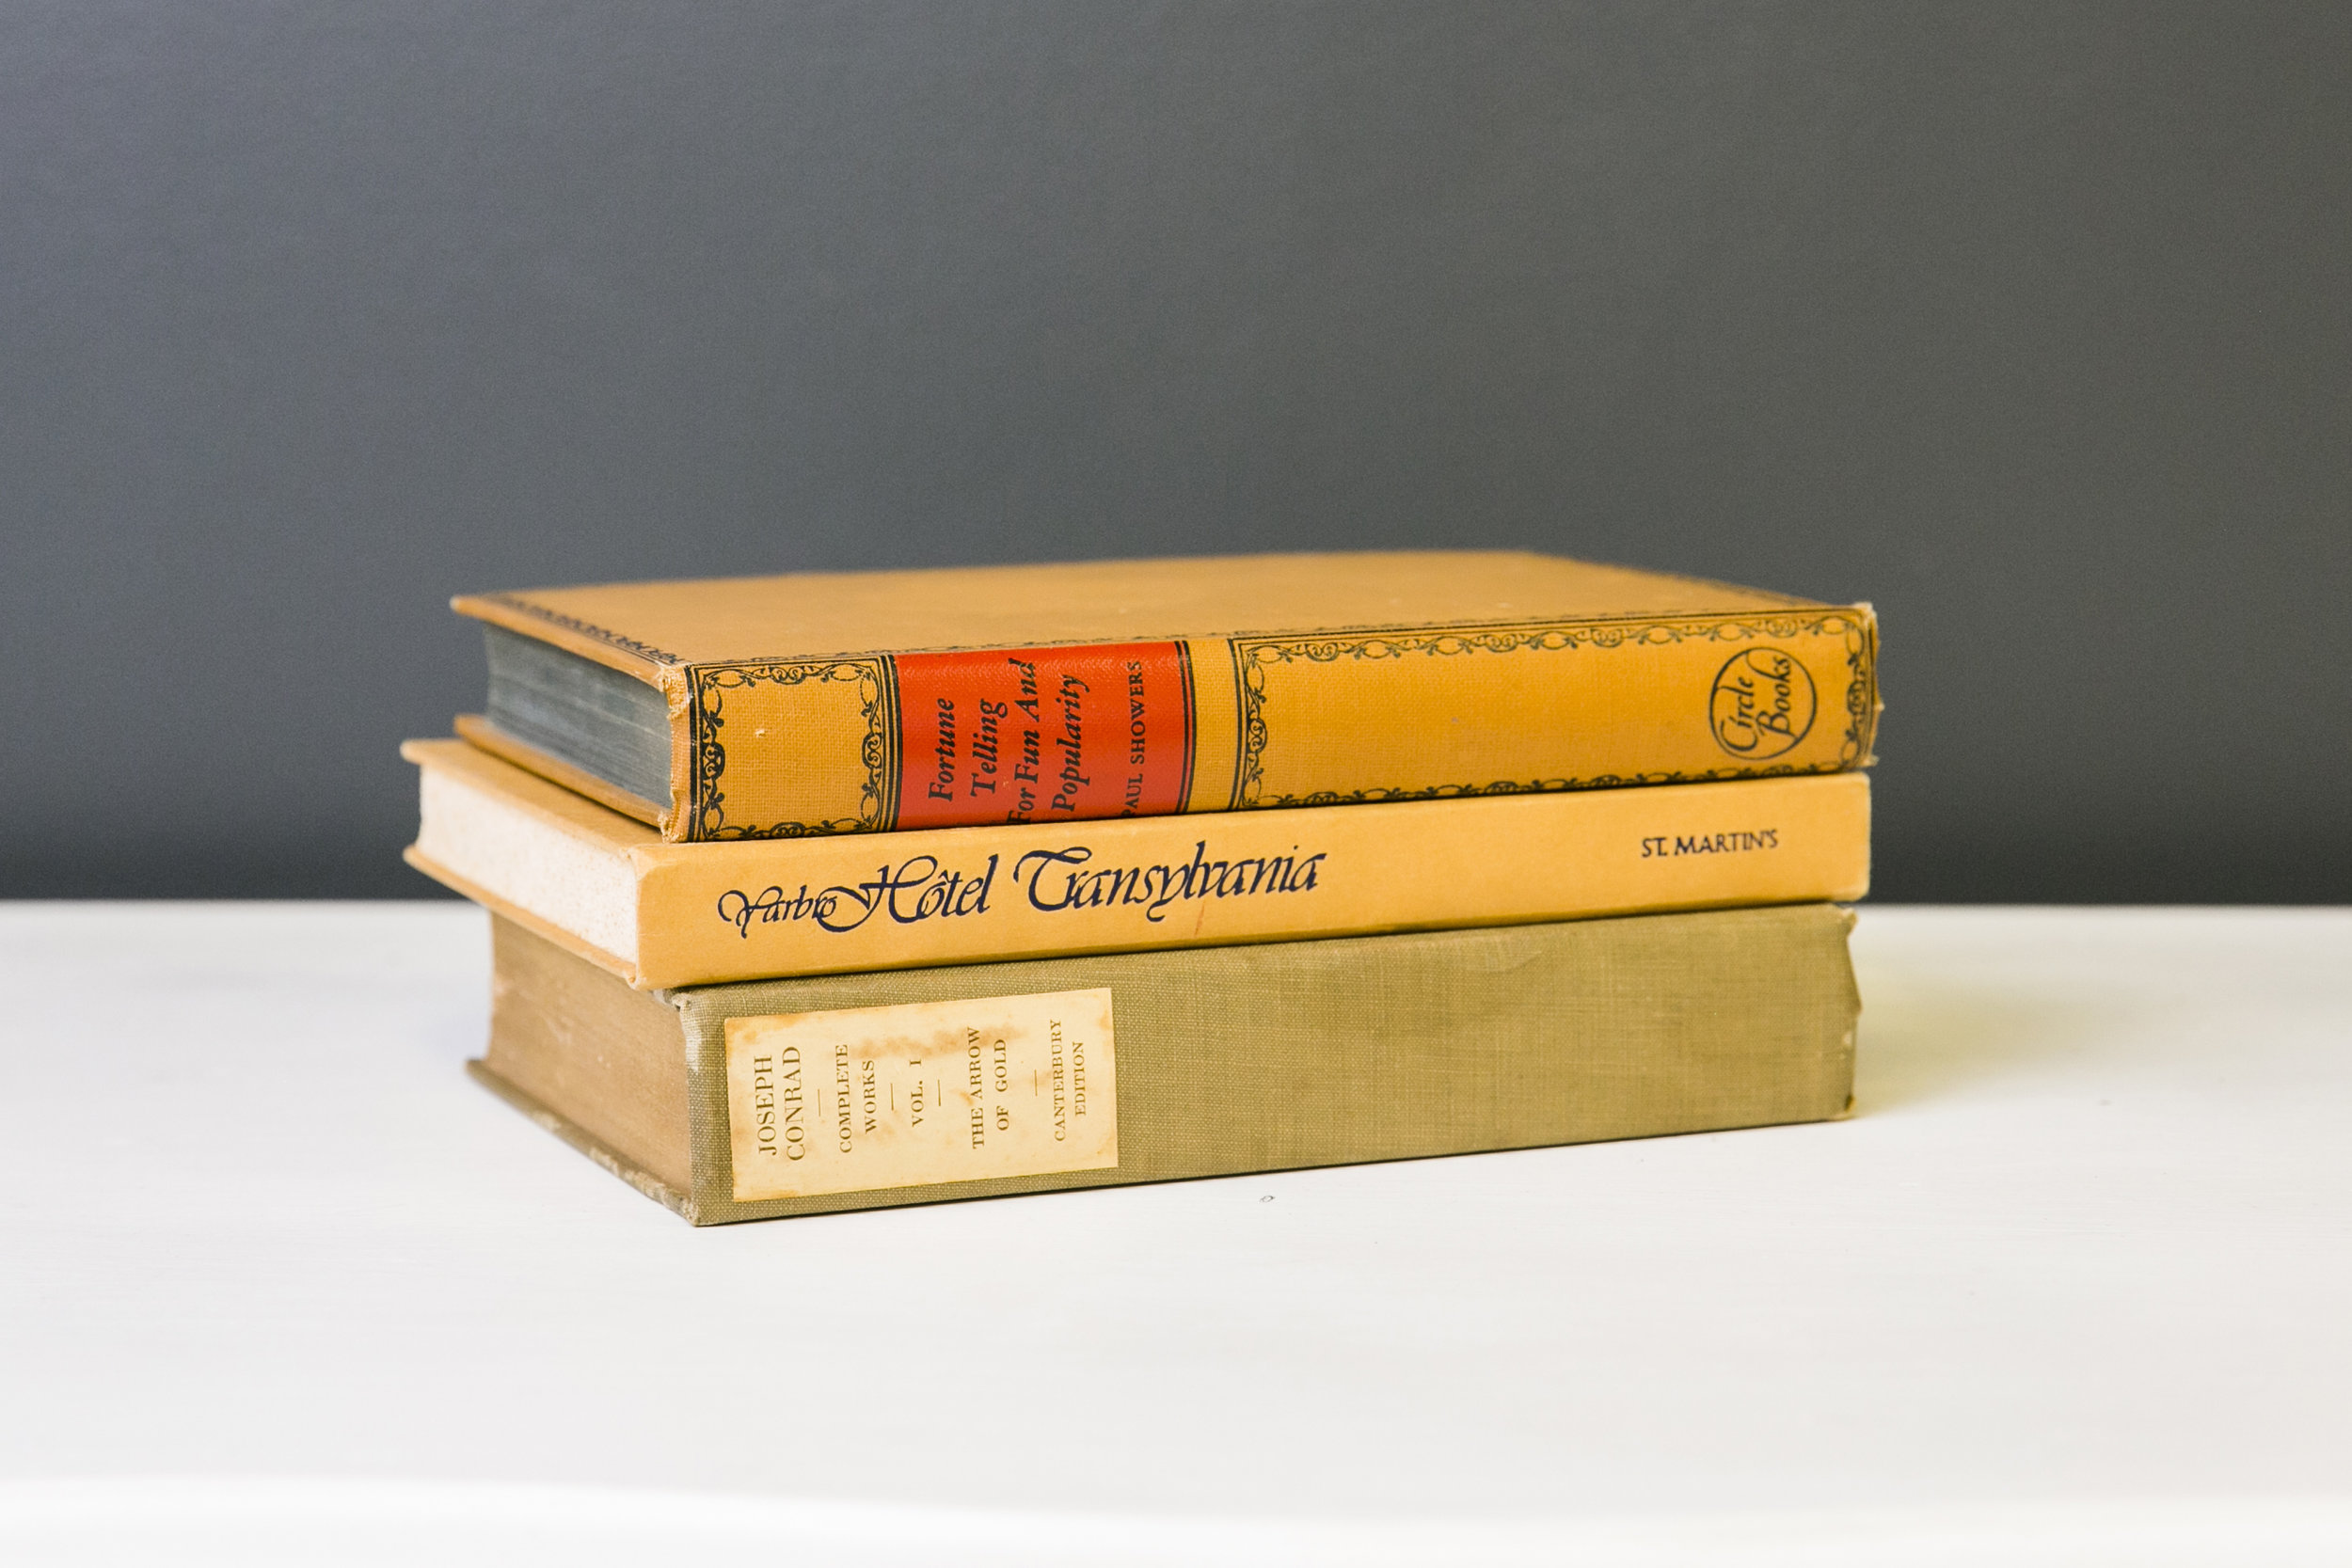 Books - Yellows to Tans/Golds